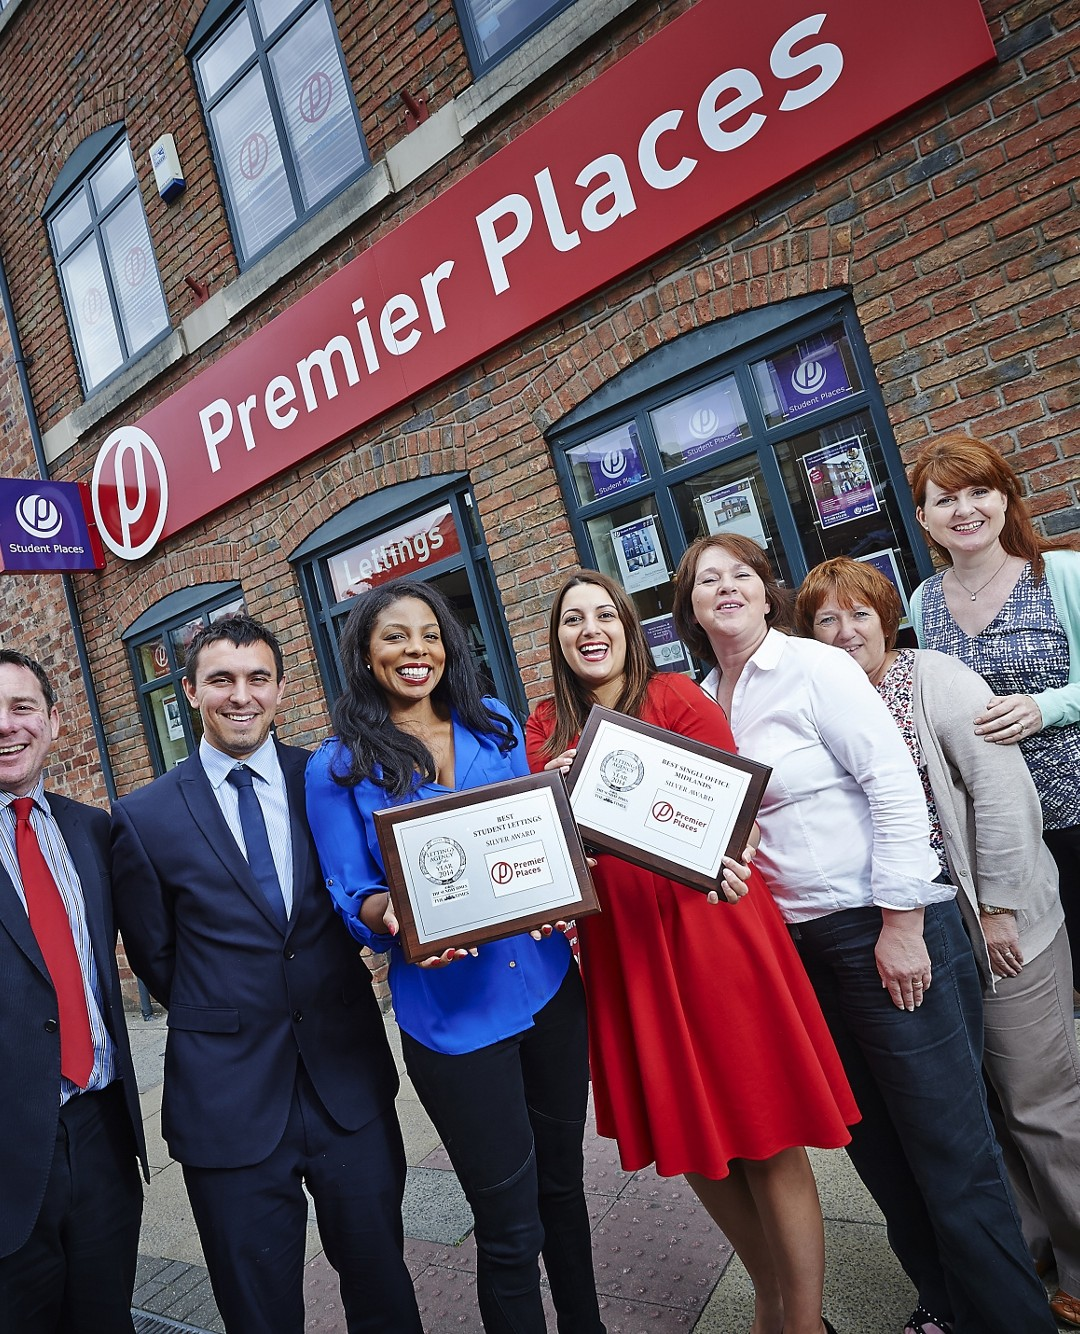 WORCESTER PROPERTY FIRM CELEBRATES LATEST AWARD WIN AS IT GOES FOR GROWTH